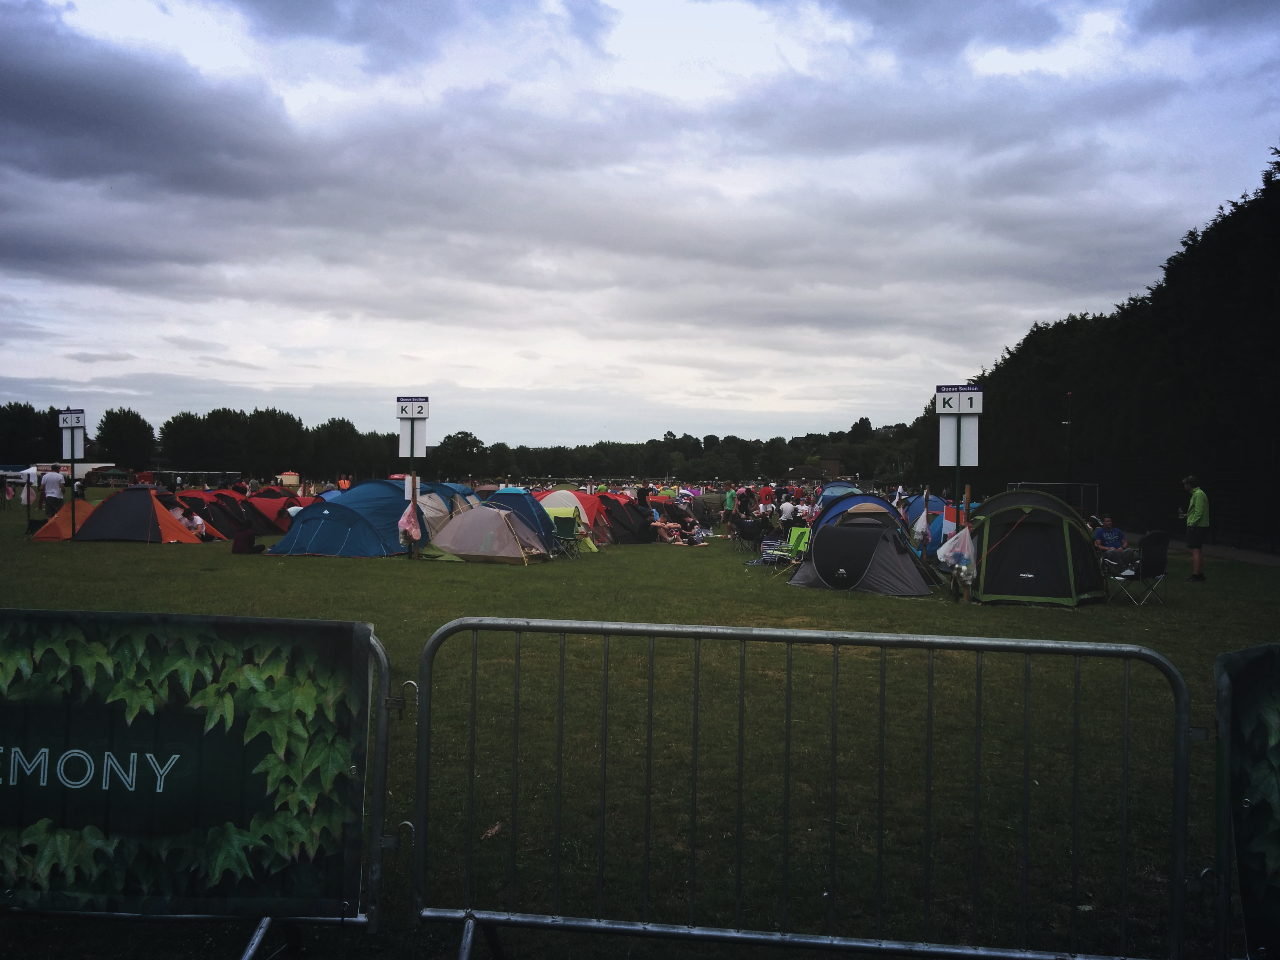 Wimbledon 2015 — Tents pitched up in Wimbledon Park, 28 June 2015